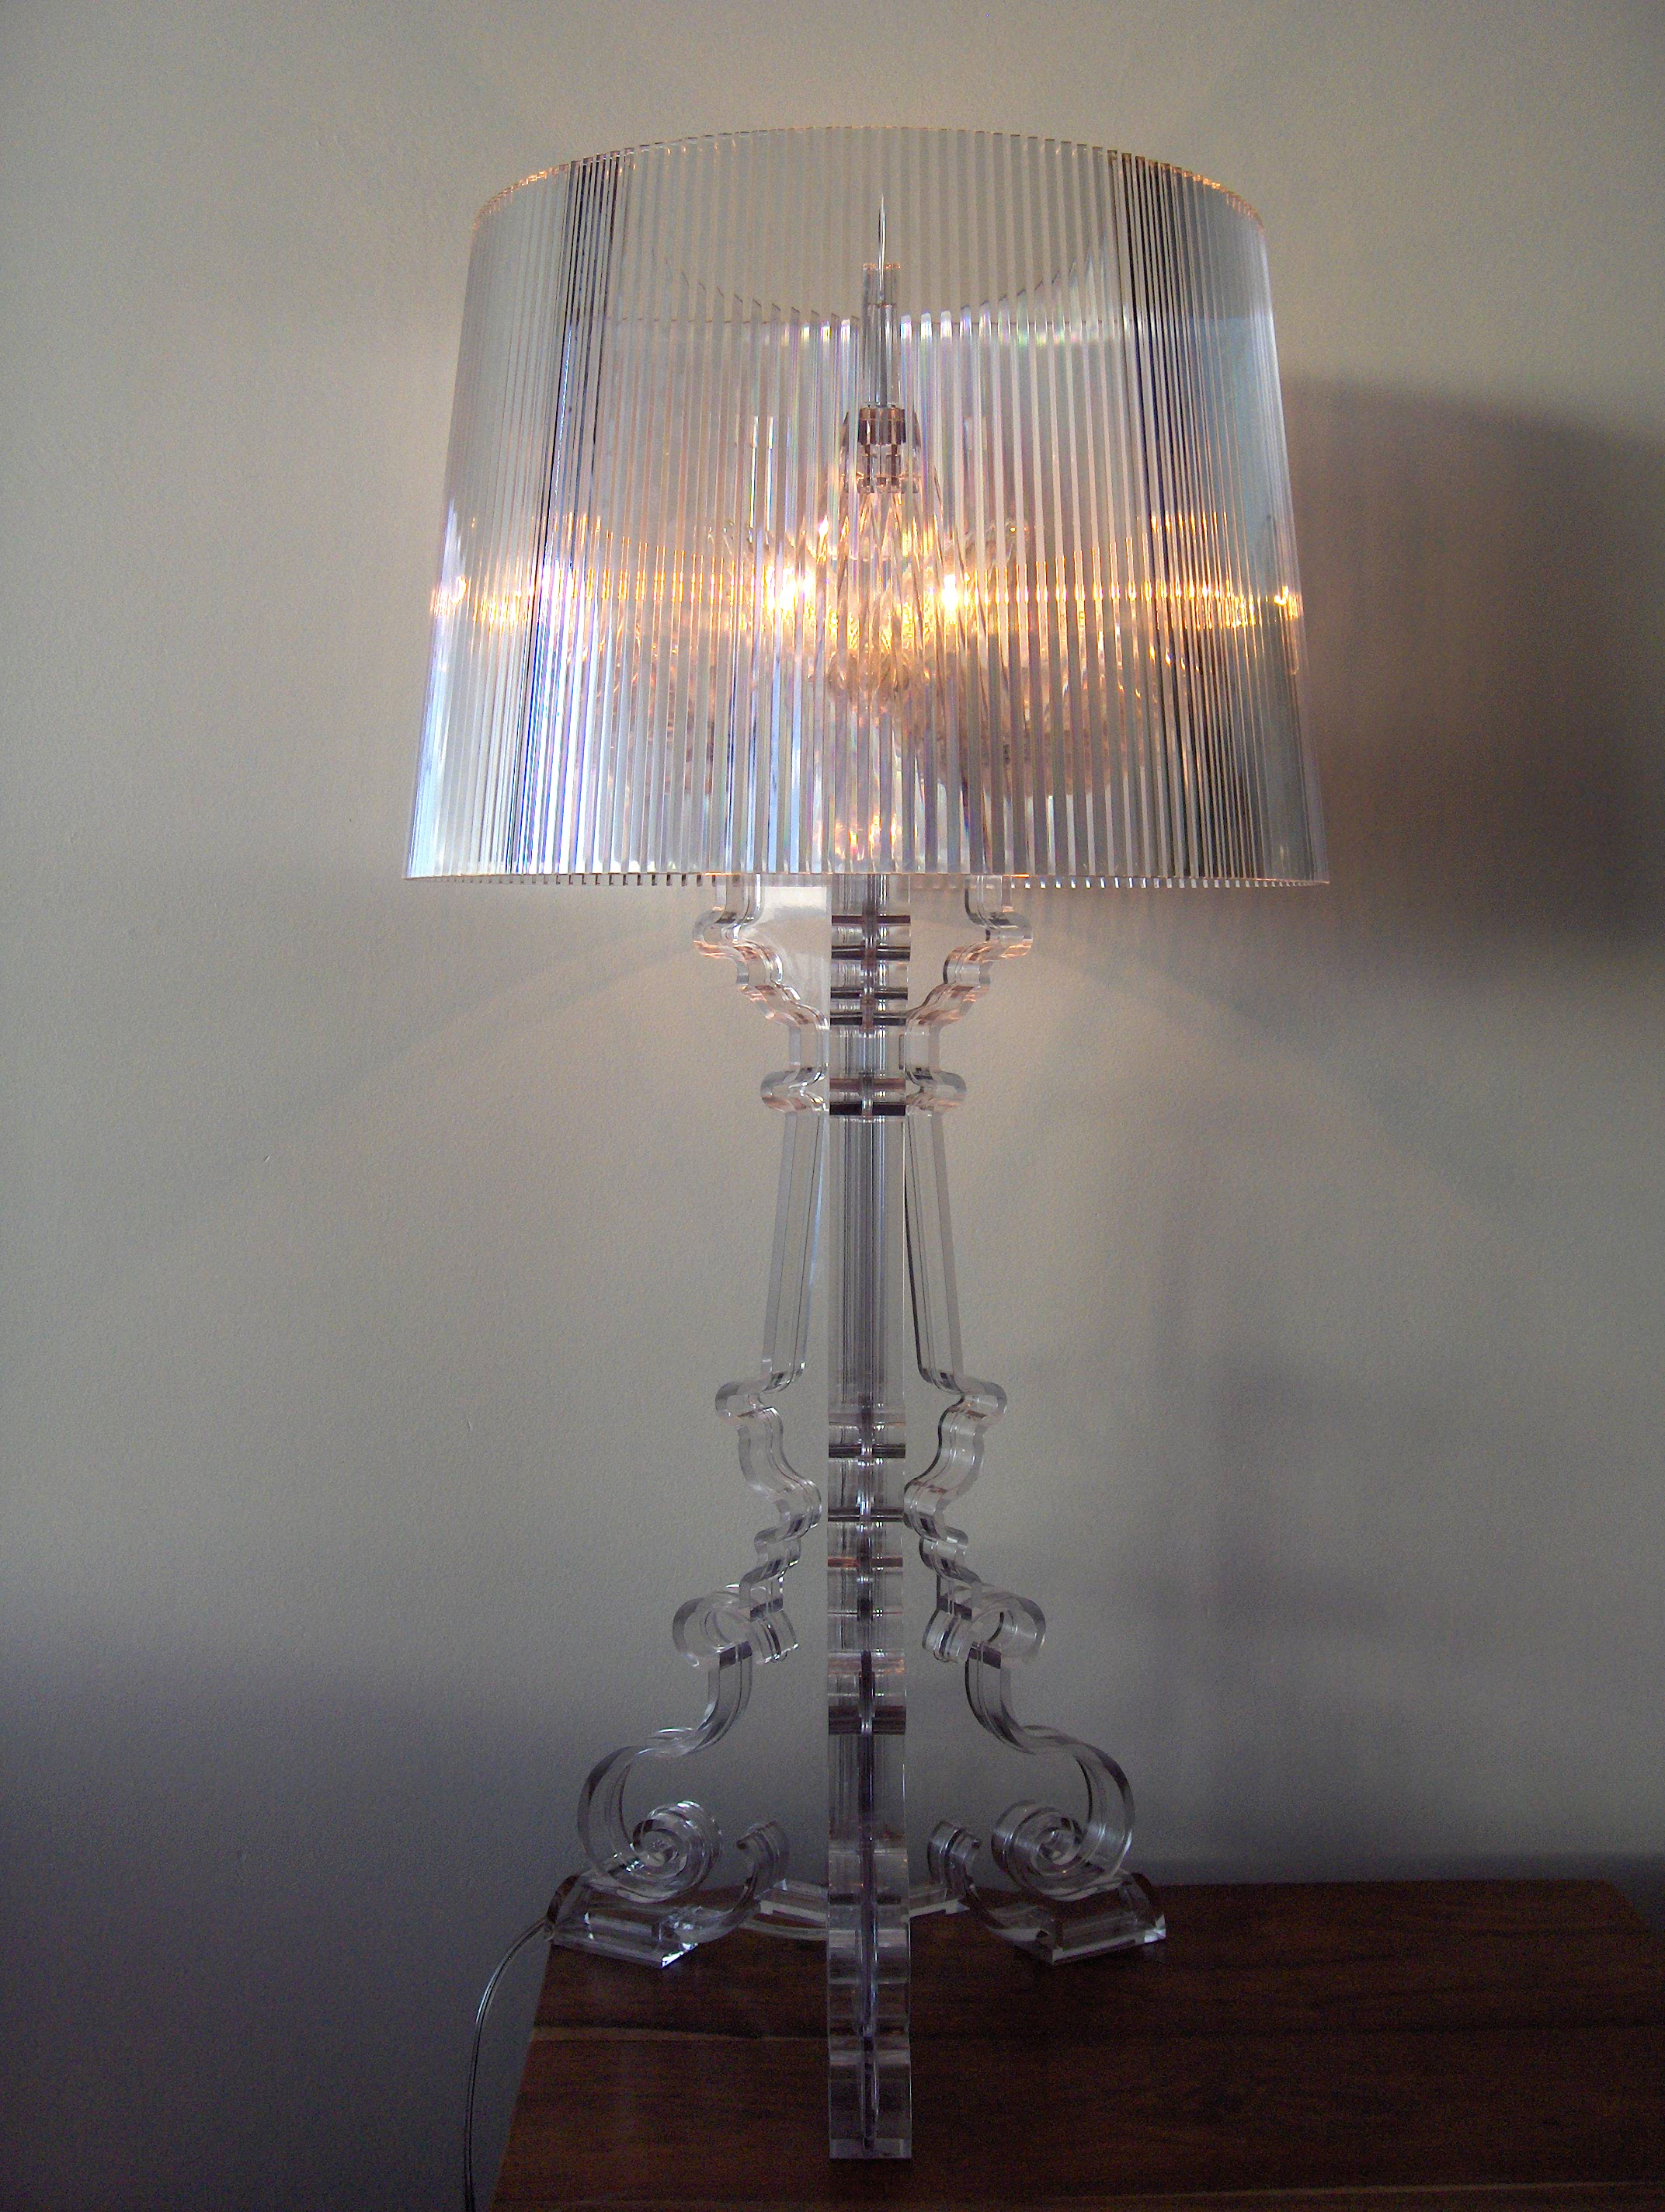 File Lamp On A Bedside Table Jpg Wikimedia Commons